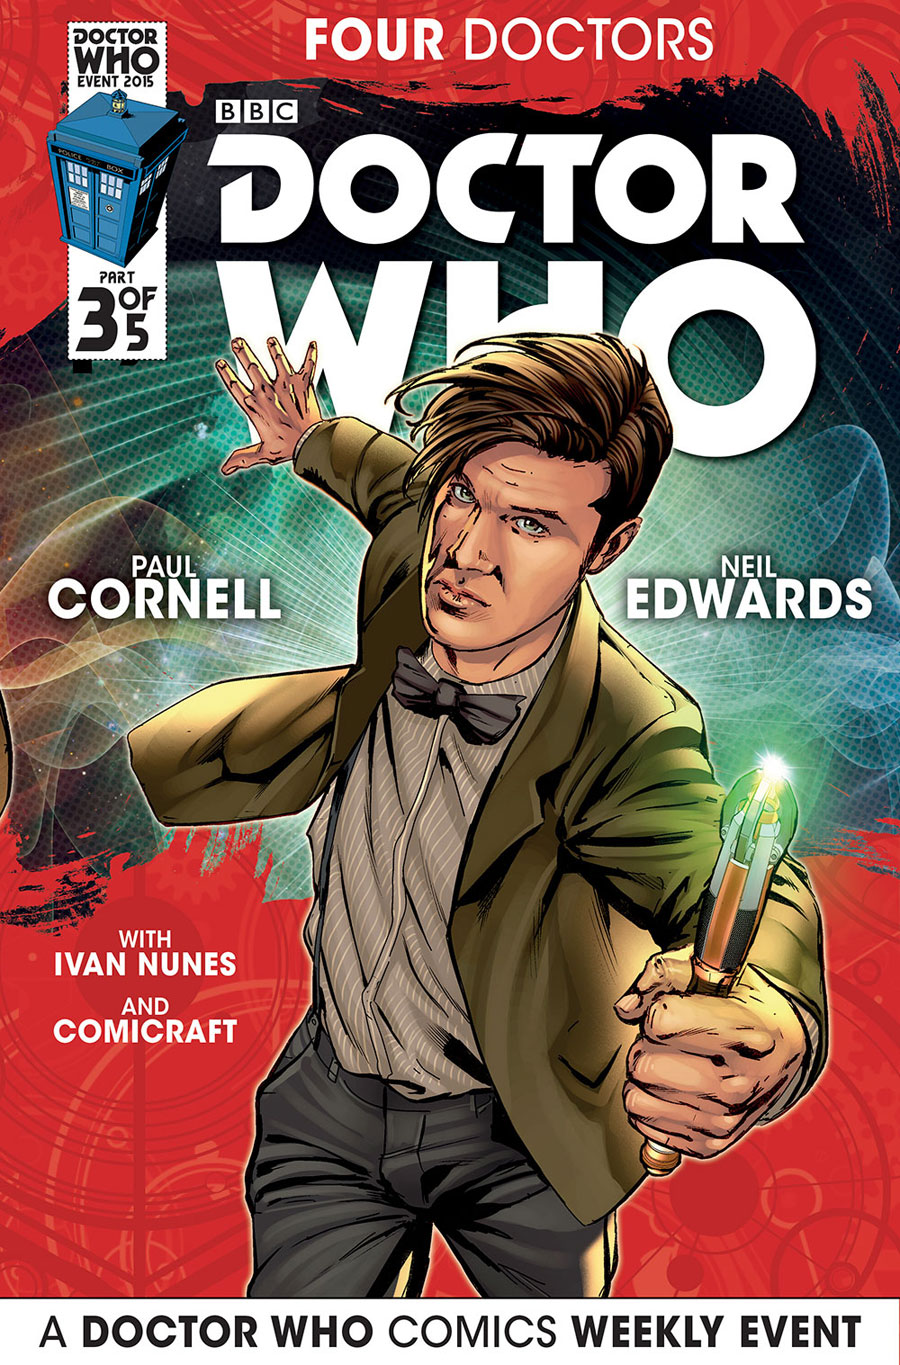 Titan-Comics-Doctor-Who-3-Four-Doctors-Doctor-Who-Brasil